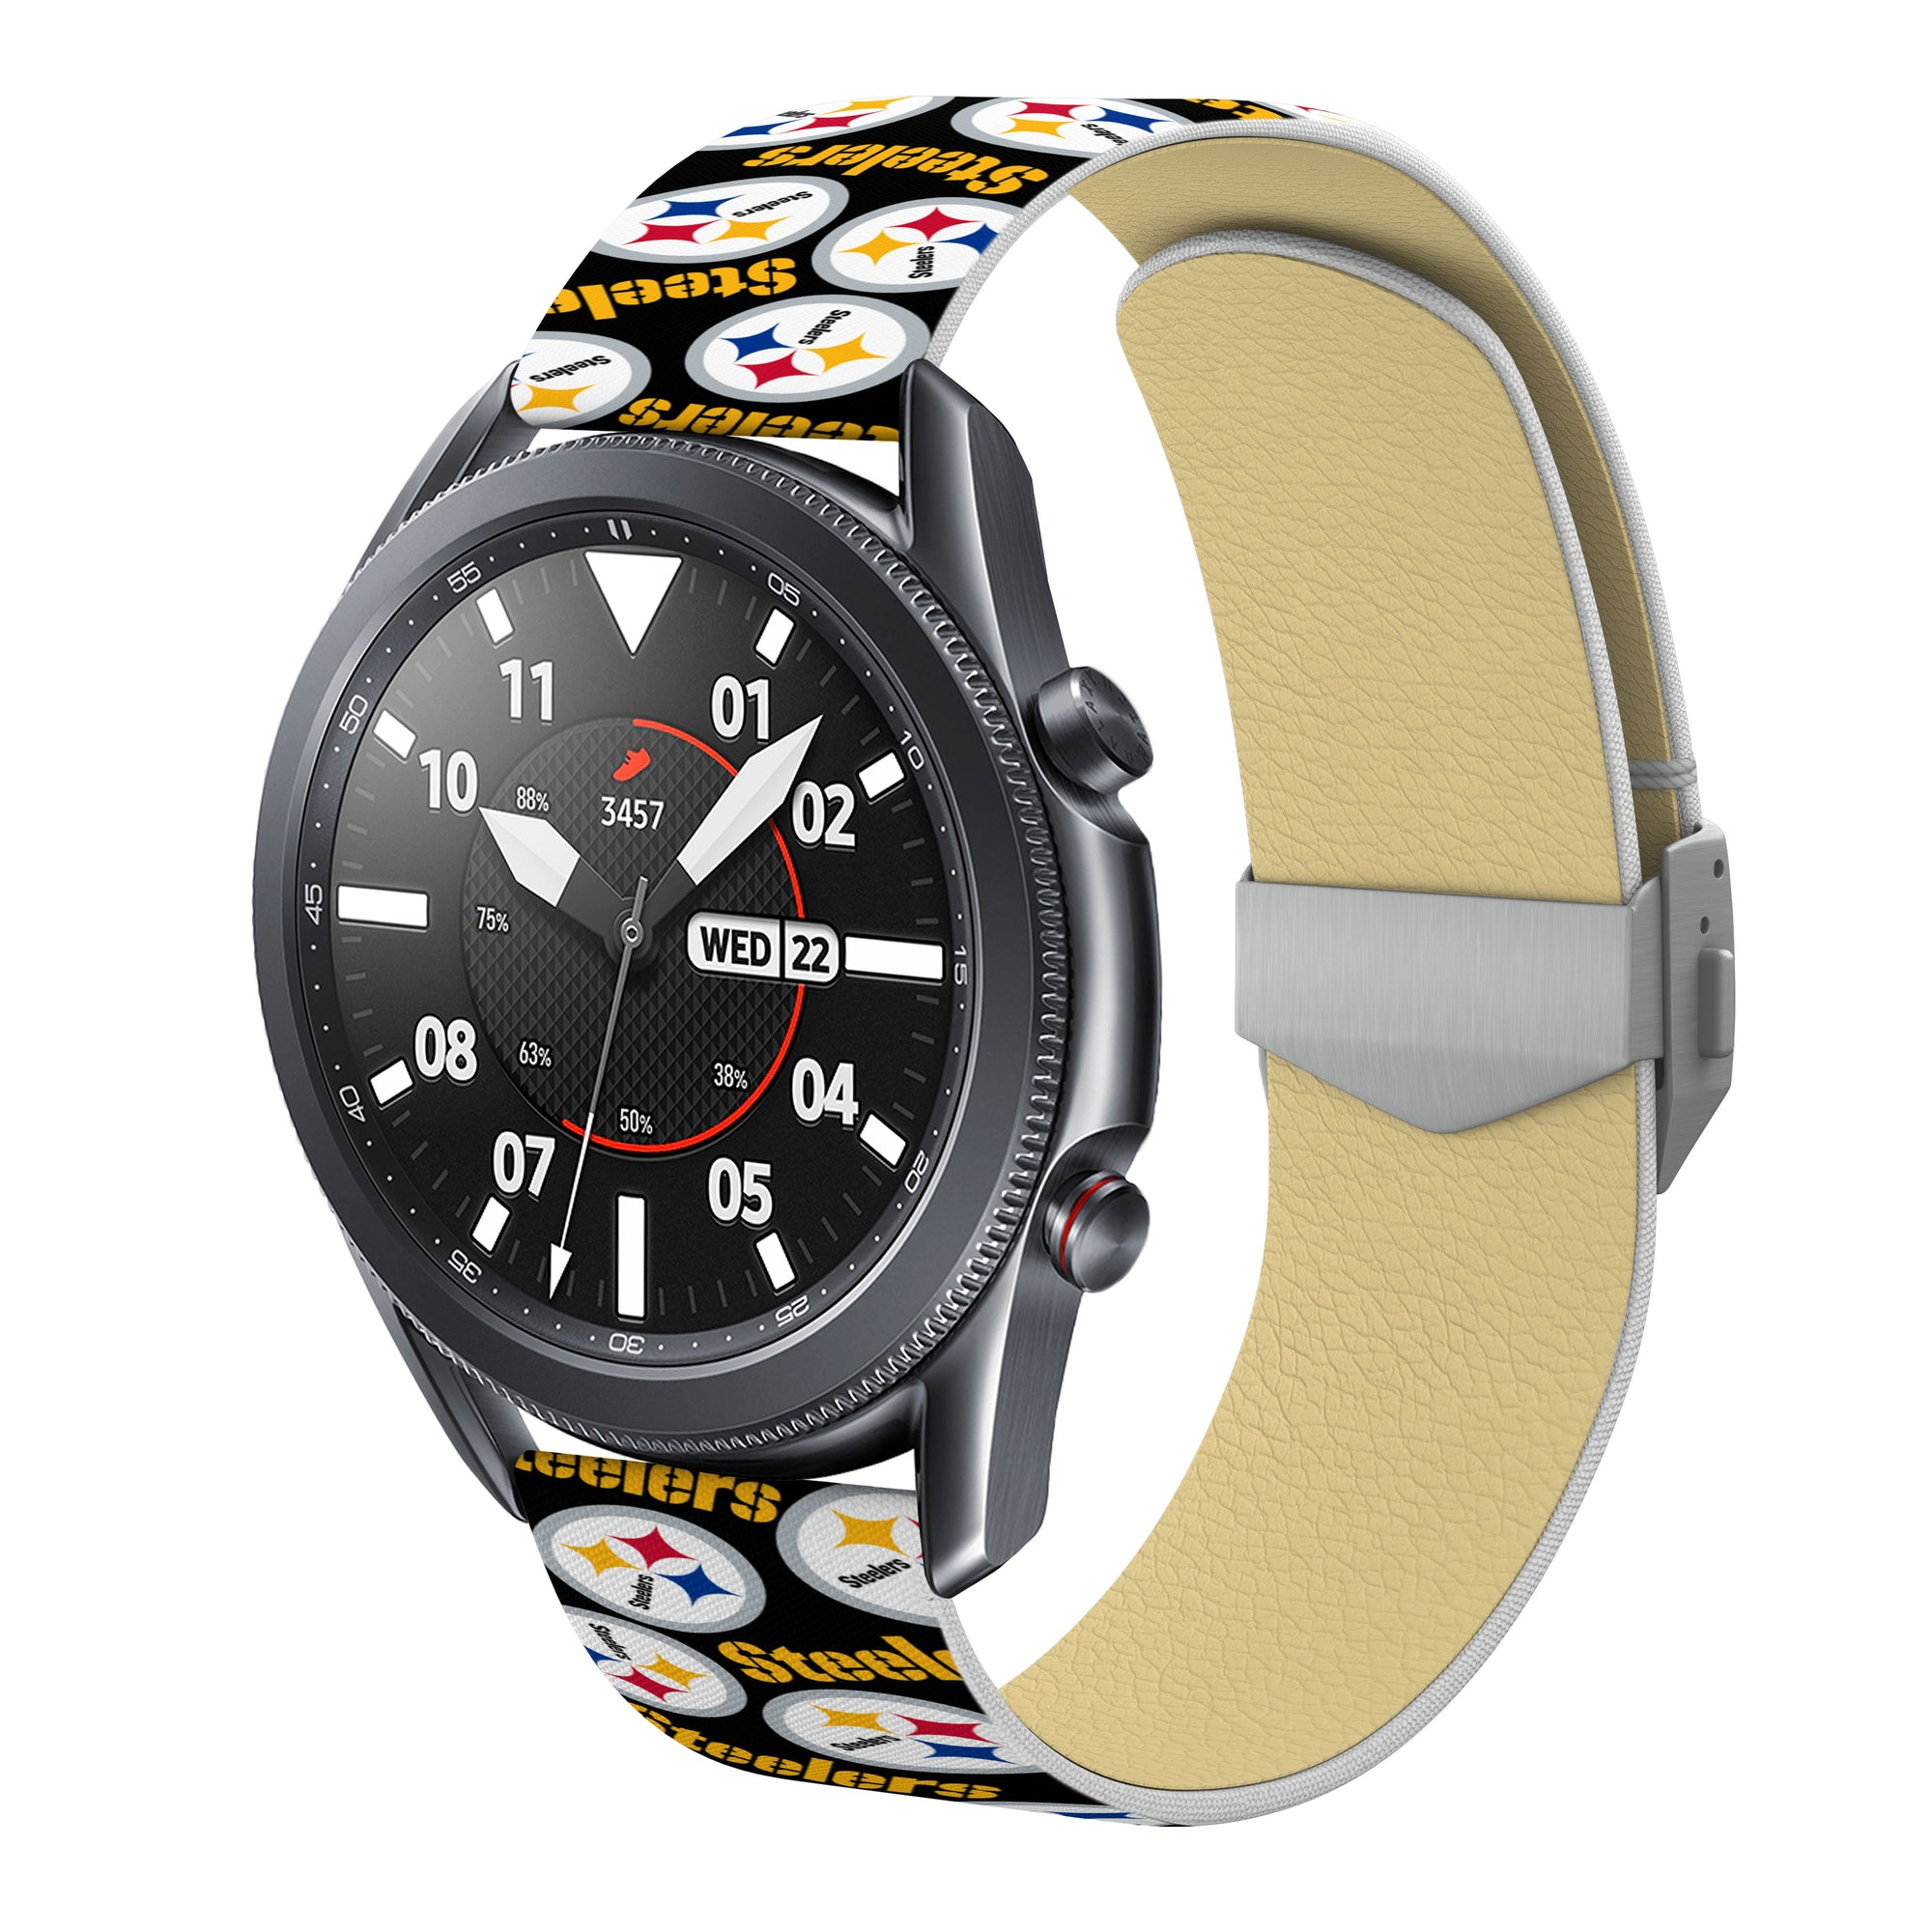 Pittsburgh Steelers Full Print Quick Change Watch Band With Engraved Buckle - AffinityBands